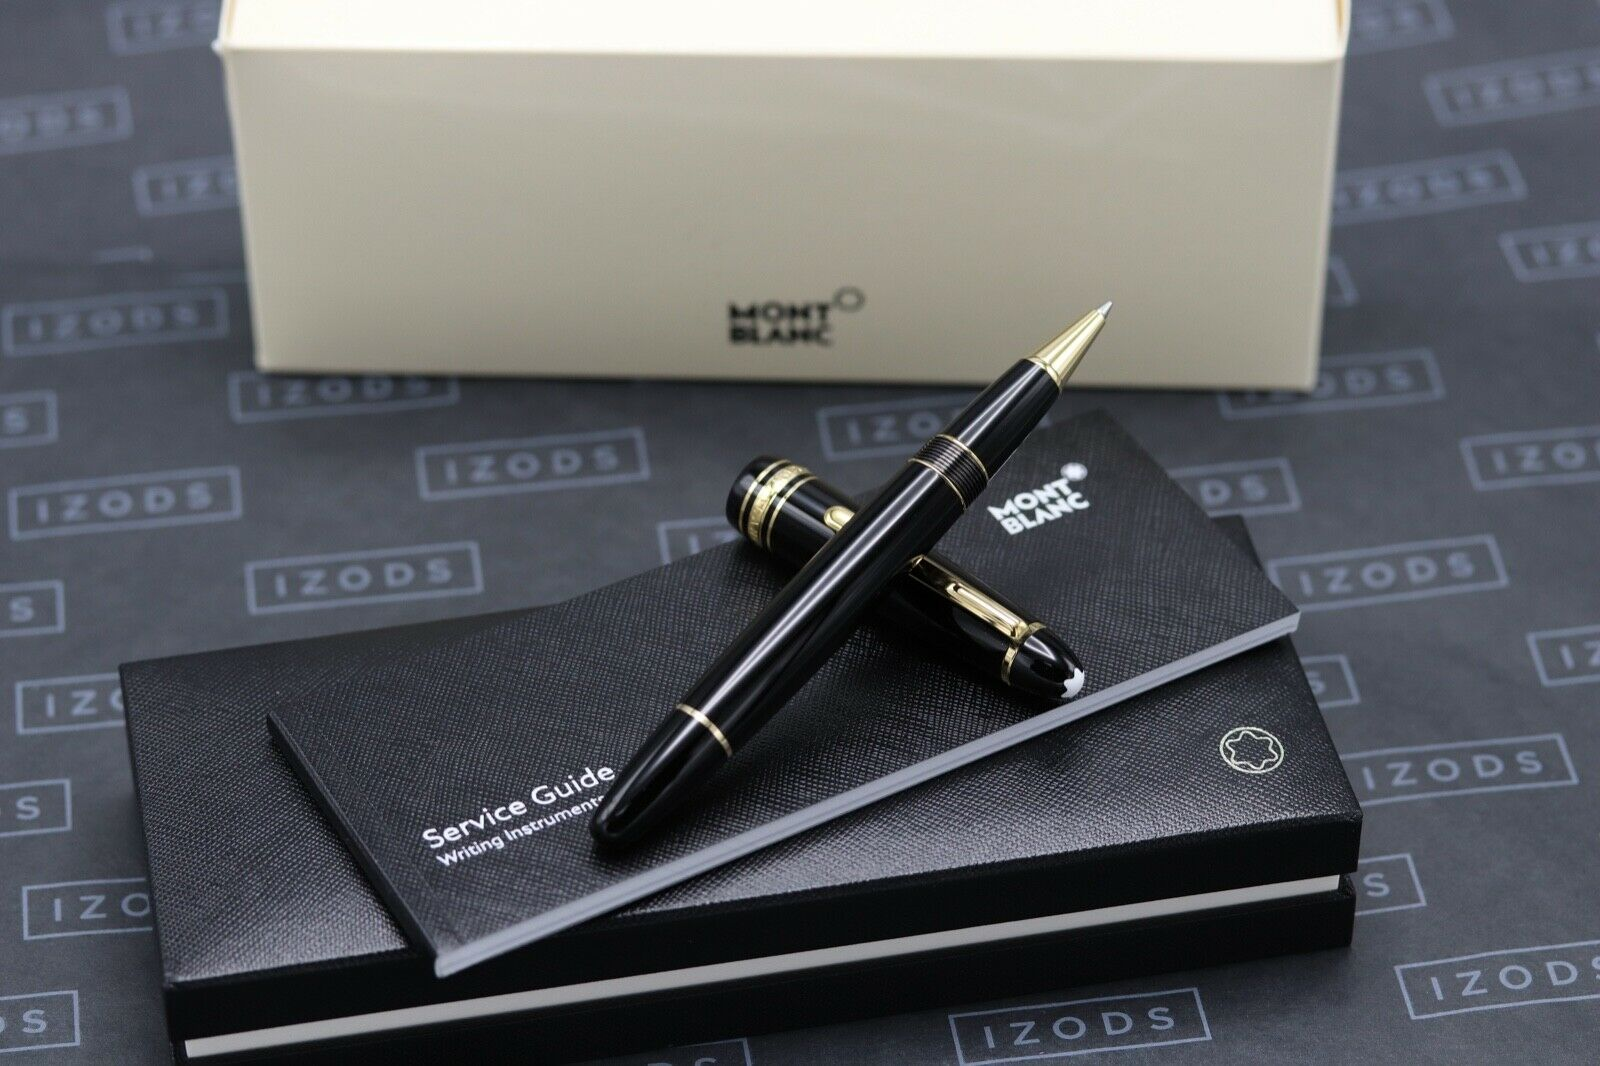 Montblanc Meisterstuck 162 LeGrand Gold Rollerball Pen - UNUSED March 2021